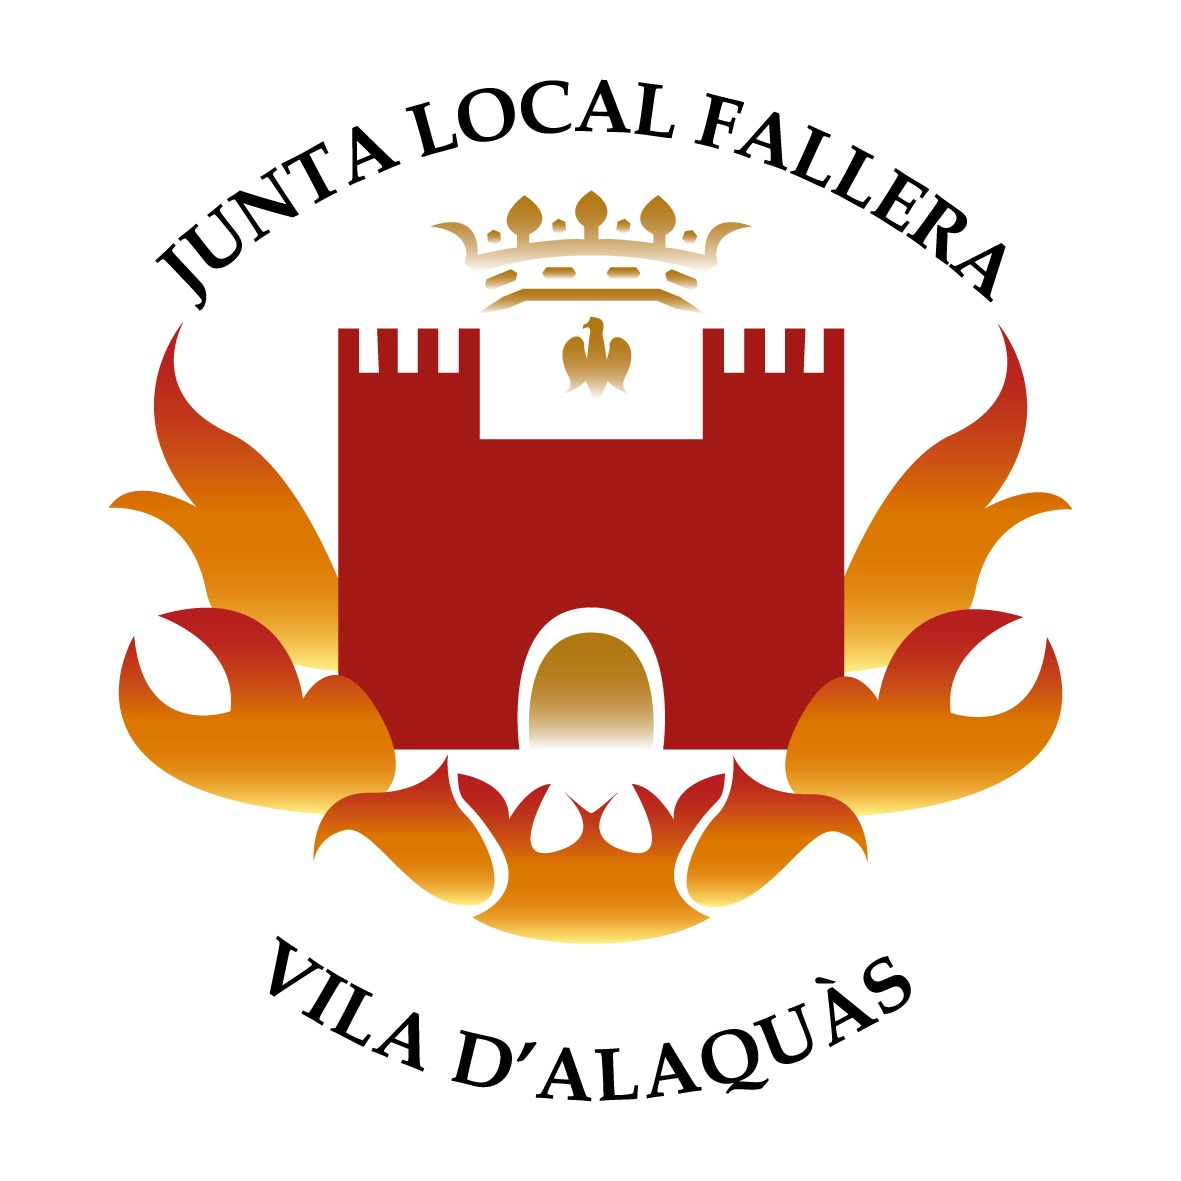 Junta Local Fallera d'Alaquàs